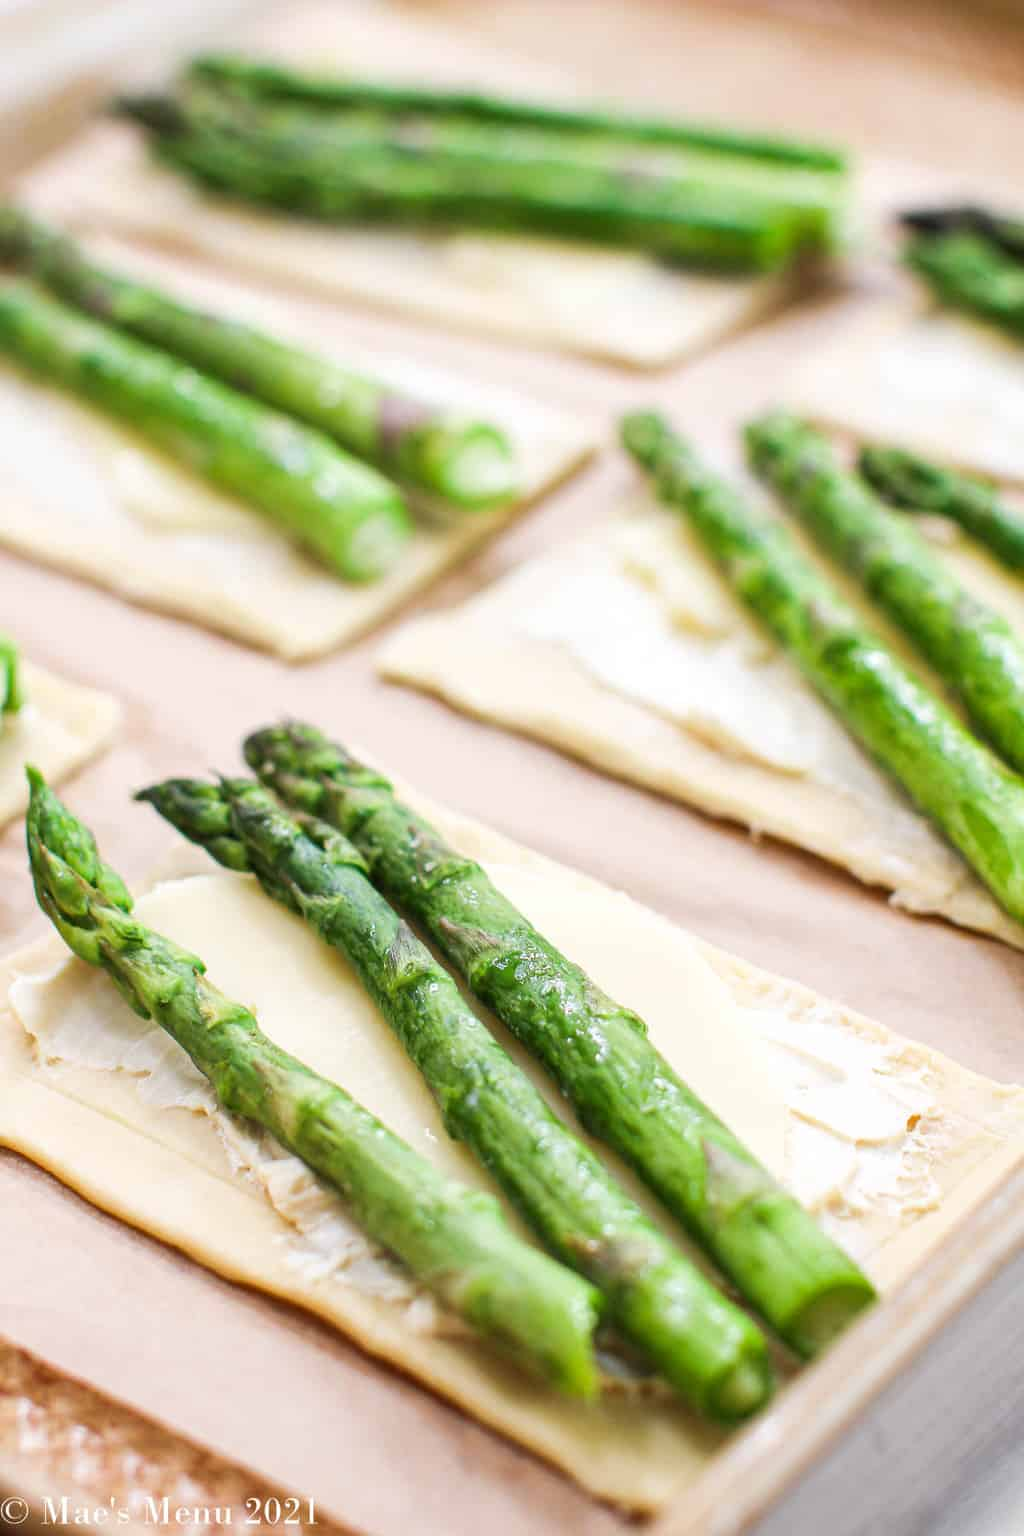 The asparagus tarts on a parchment paper-lined baking sheet, ready to go into the oven